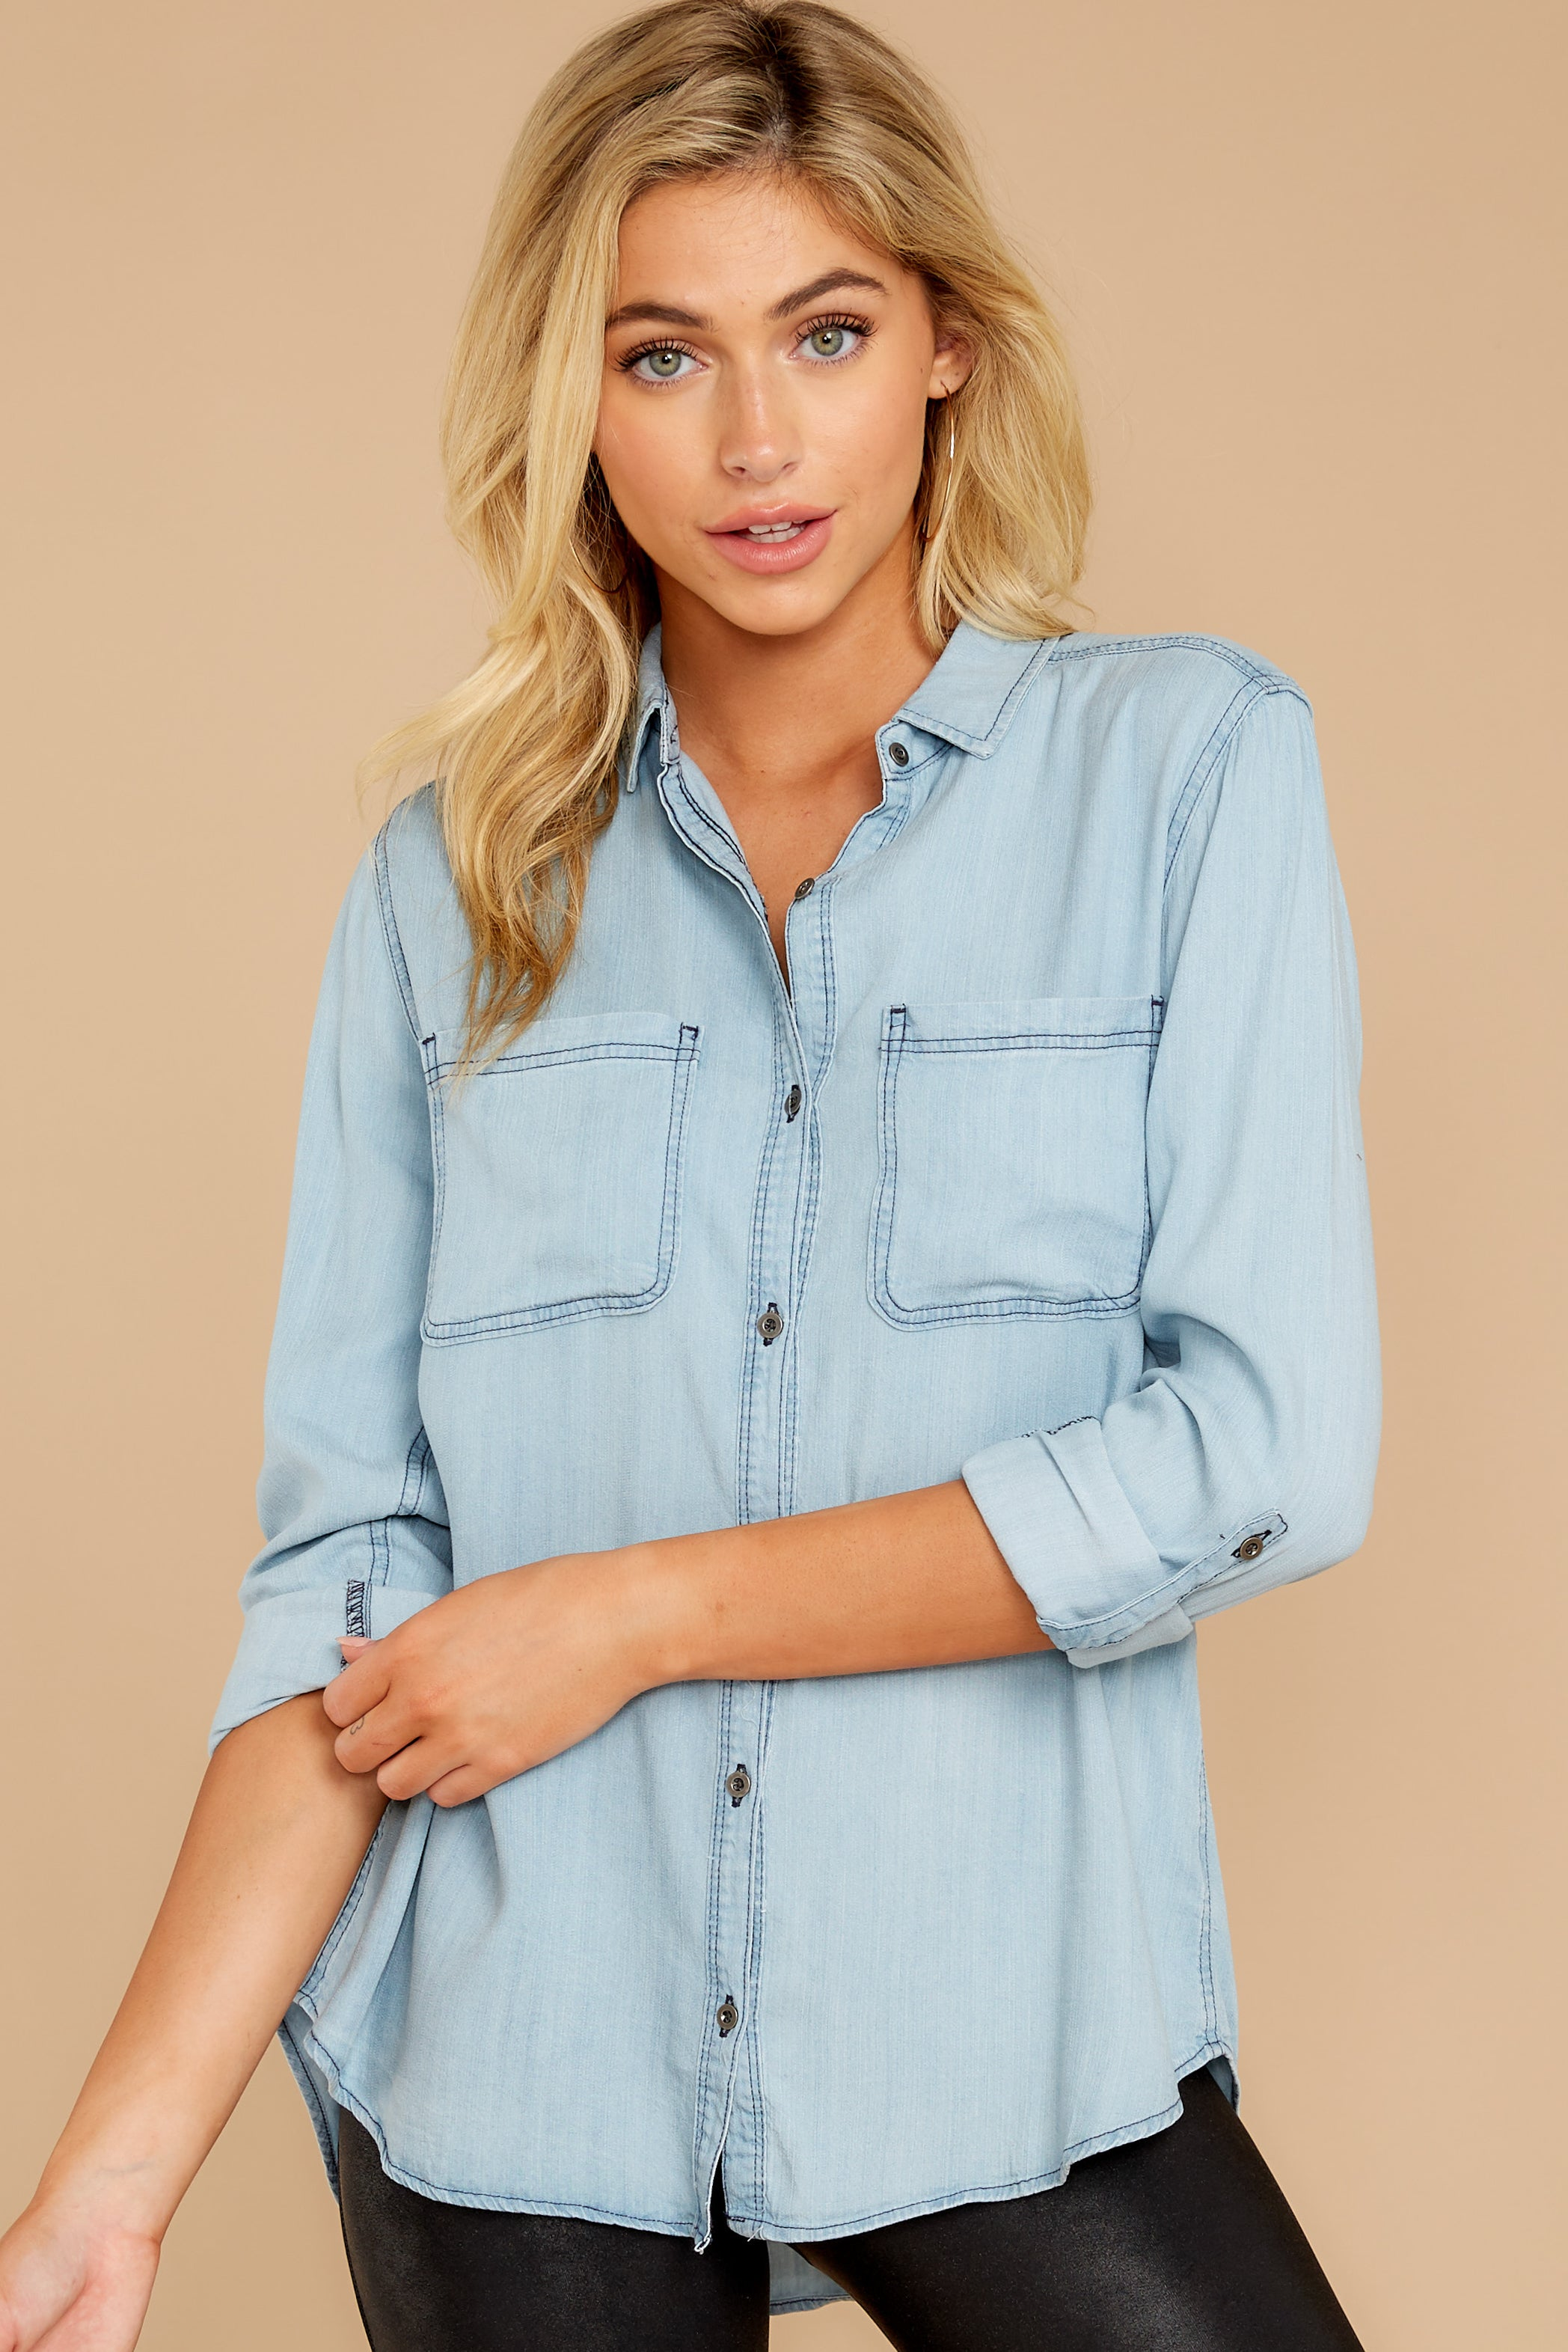 3 Wander Free Light Chambray Button Up Top at reddressboutique.com